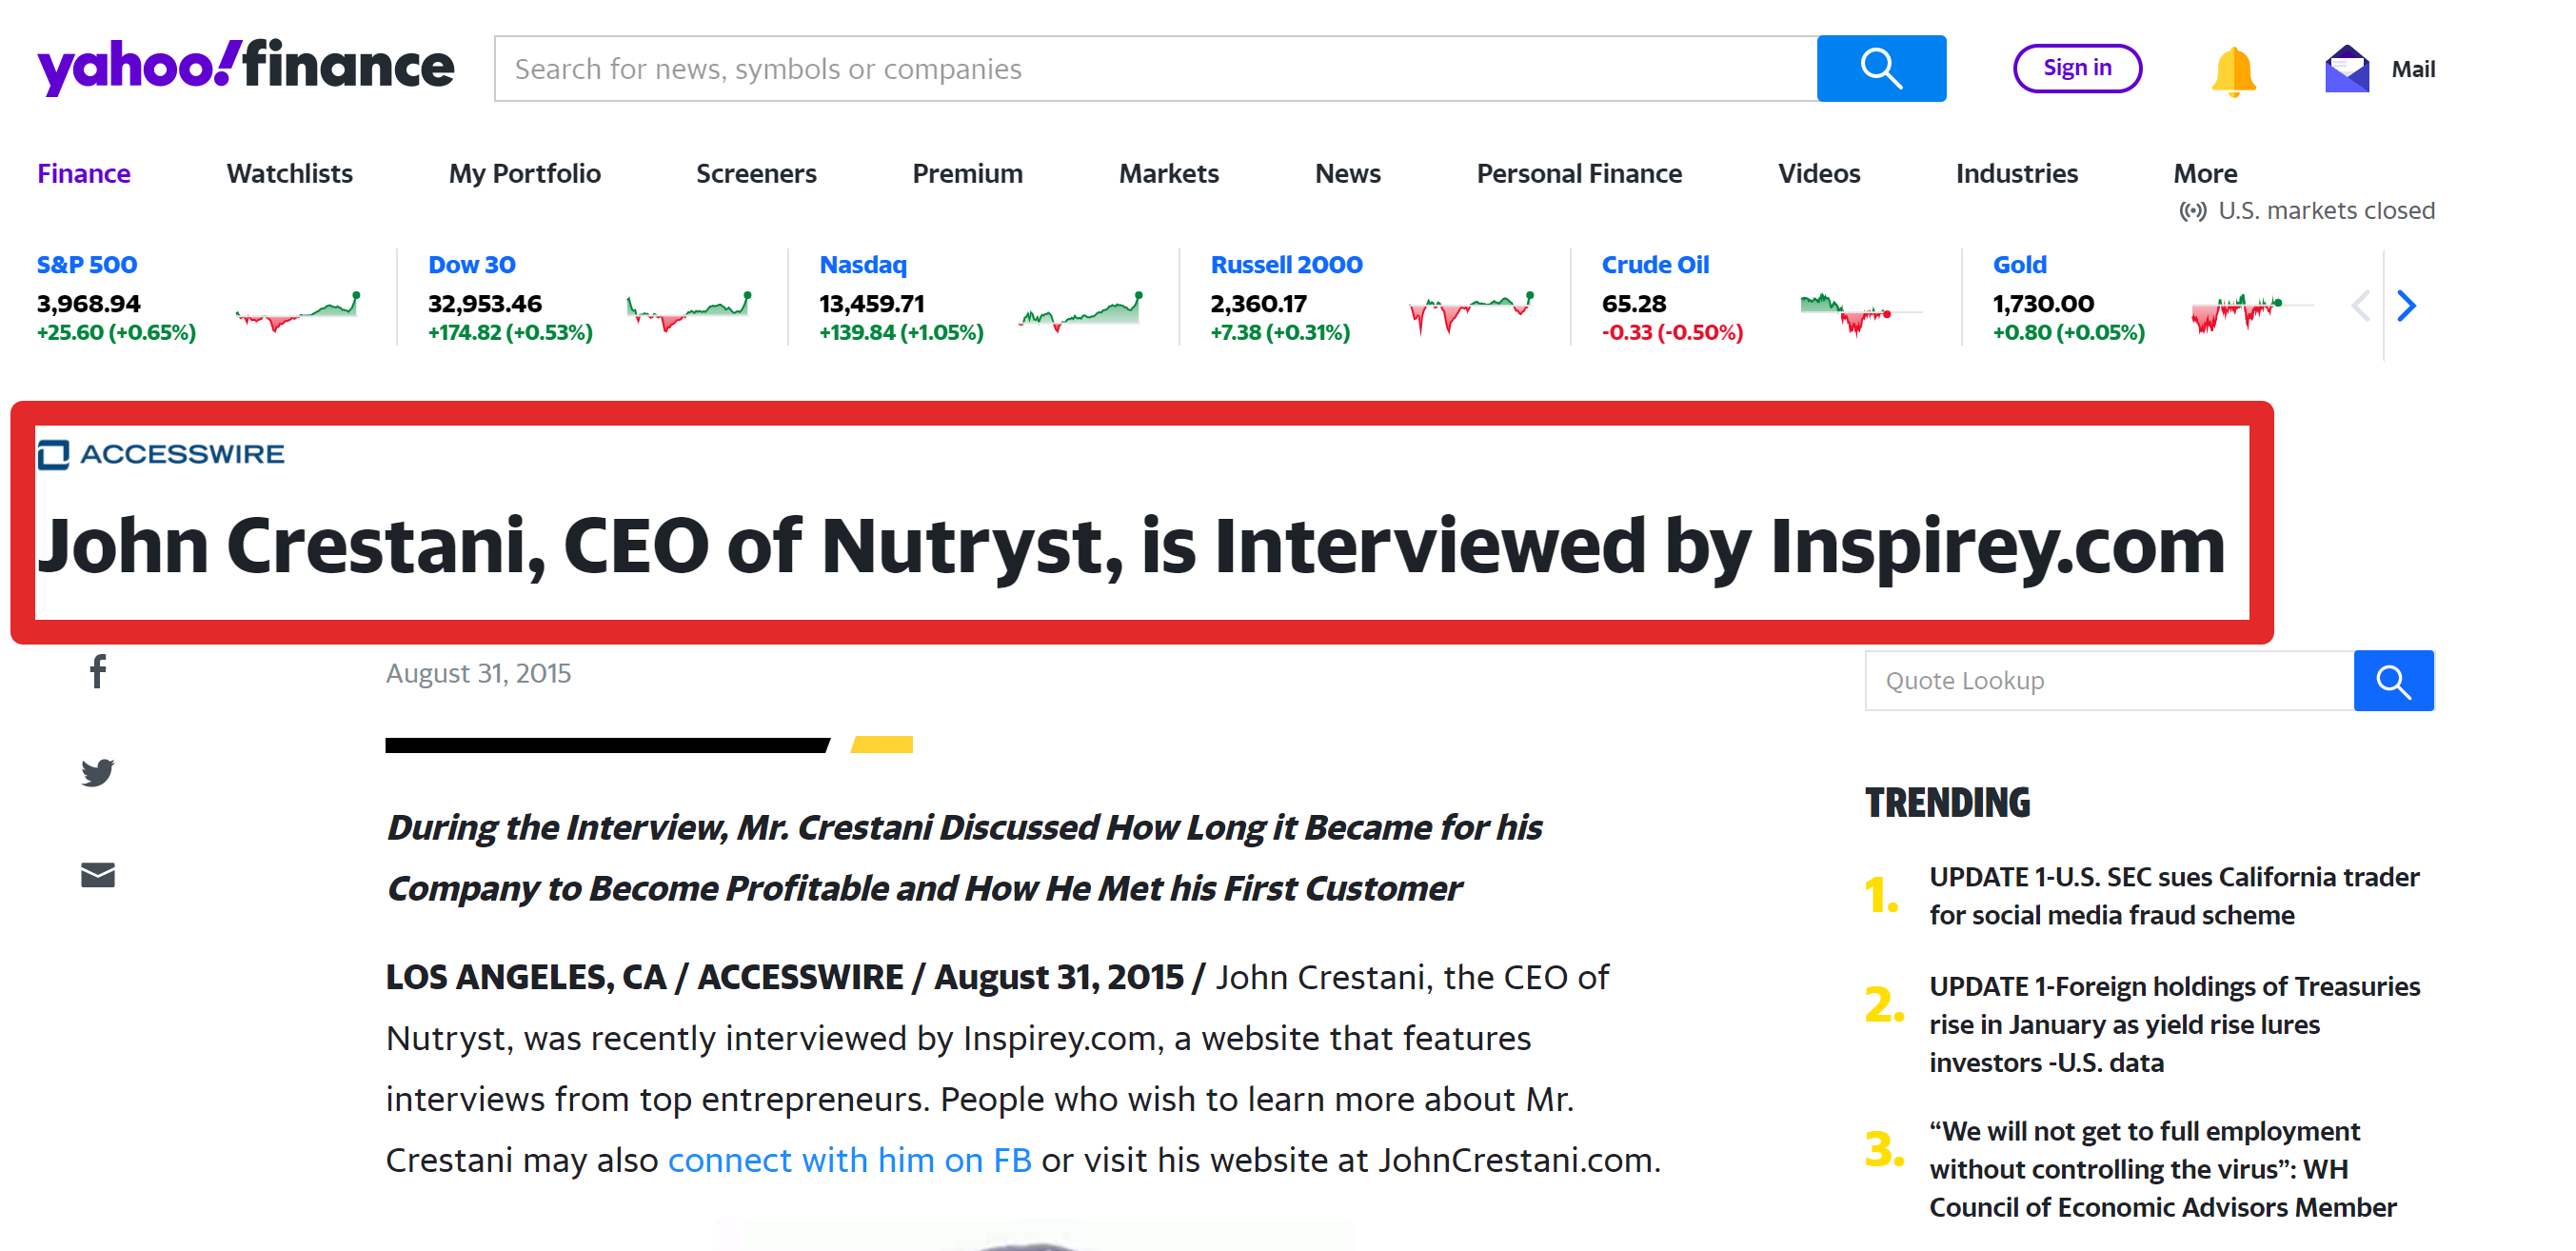 John Crestani CEO of Nutryst